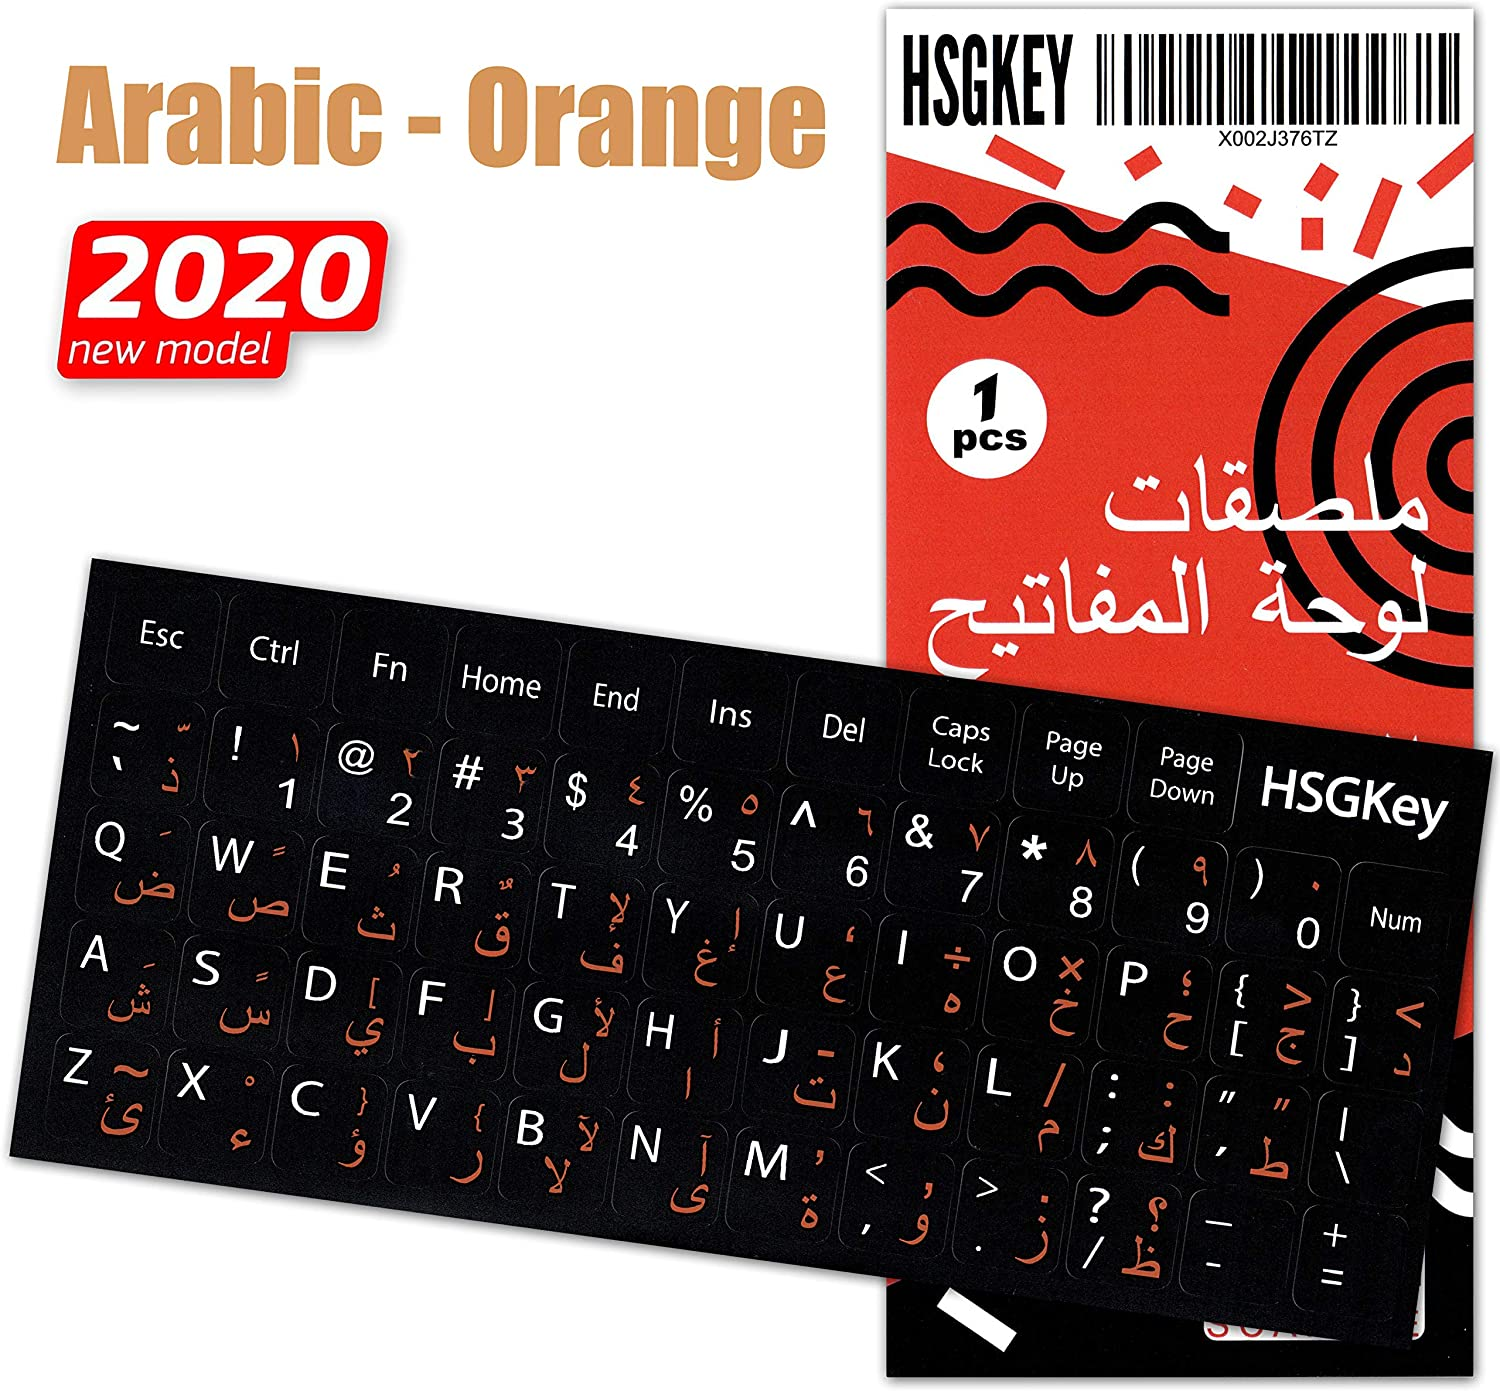 Arabic Keyboard Stickers Replacement White/Orange Lettering Black Background for MacBook Air Pro Computer Laptop Desktop PC Mac English Ergonomic, Unit Size: 0.47x0.47 (Matte)